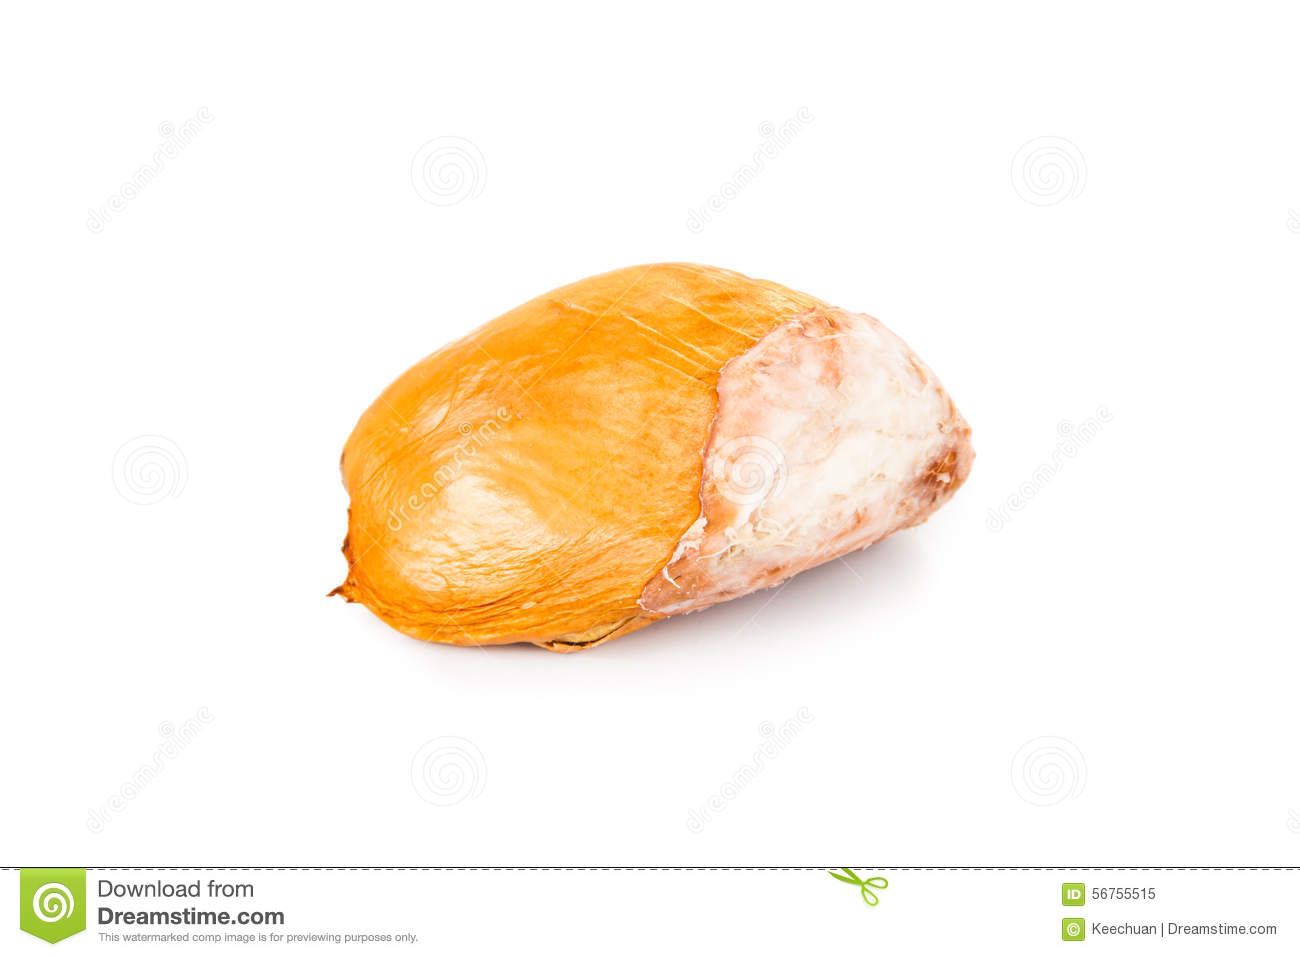 Big, Chunky, Round, And Hard Durian Fruit Seeds Isolated In White.